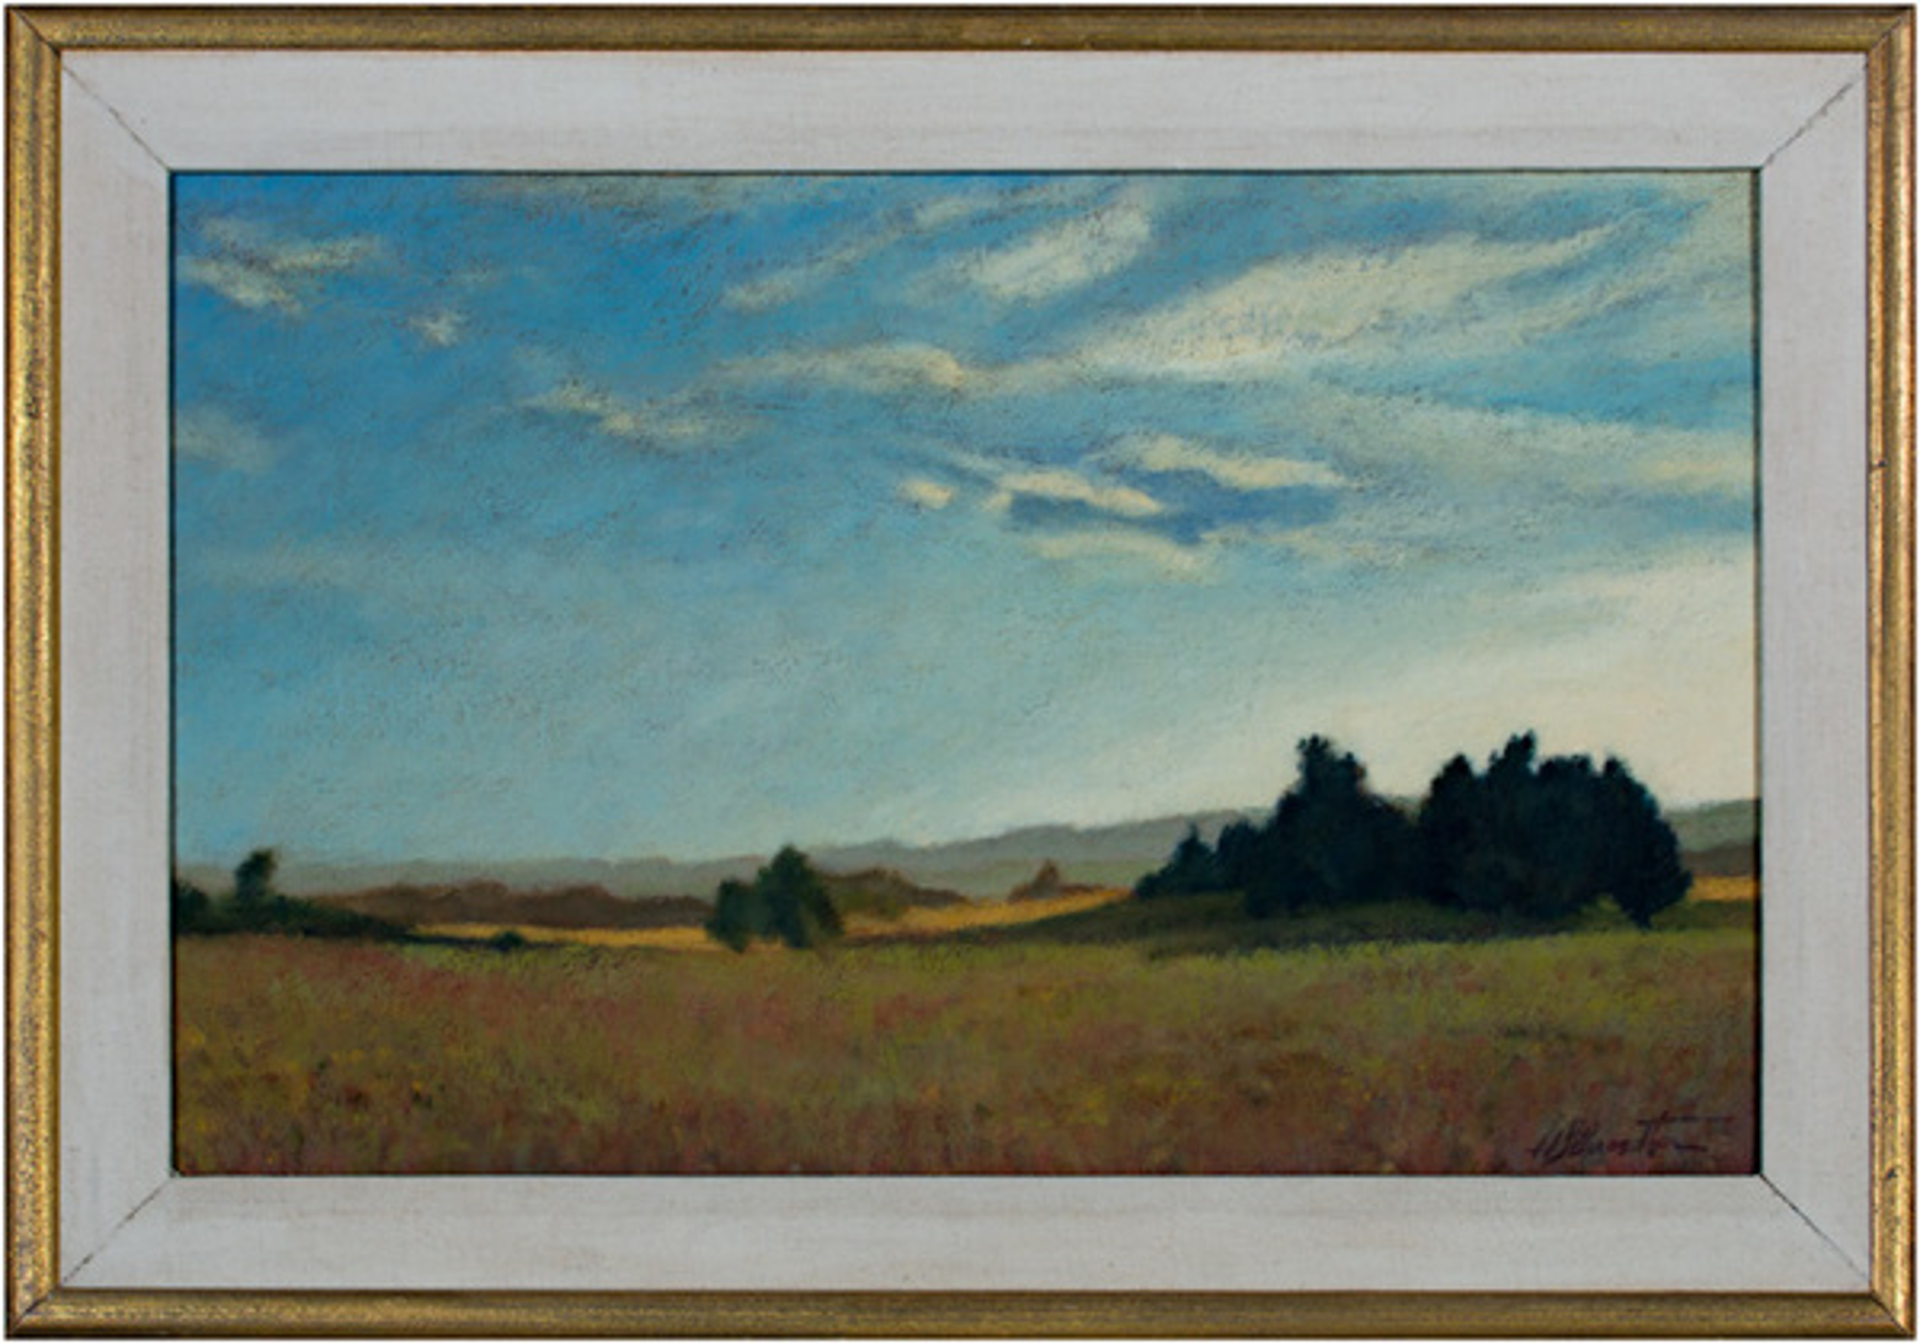 Landscape Near Amherst by Howard Schroedter